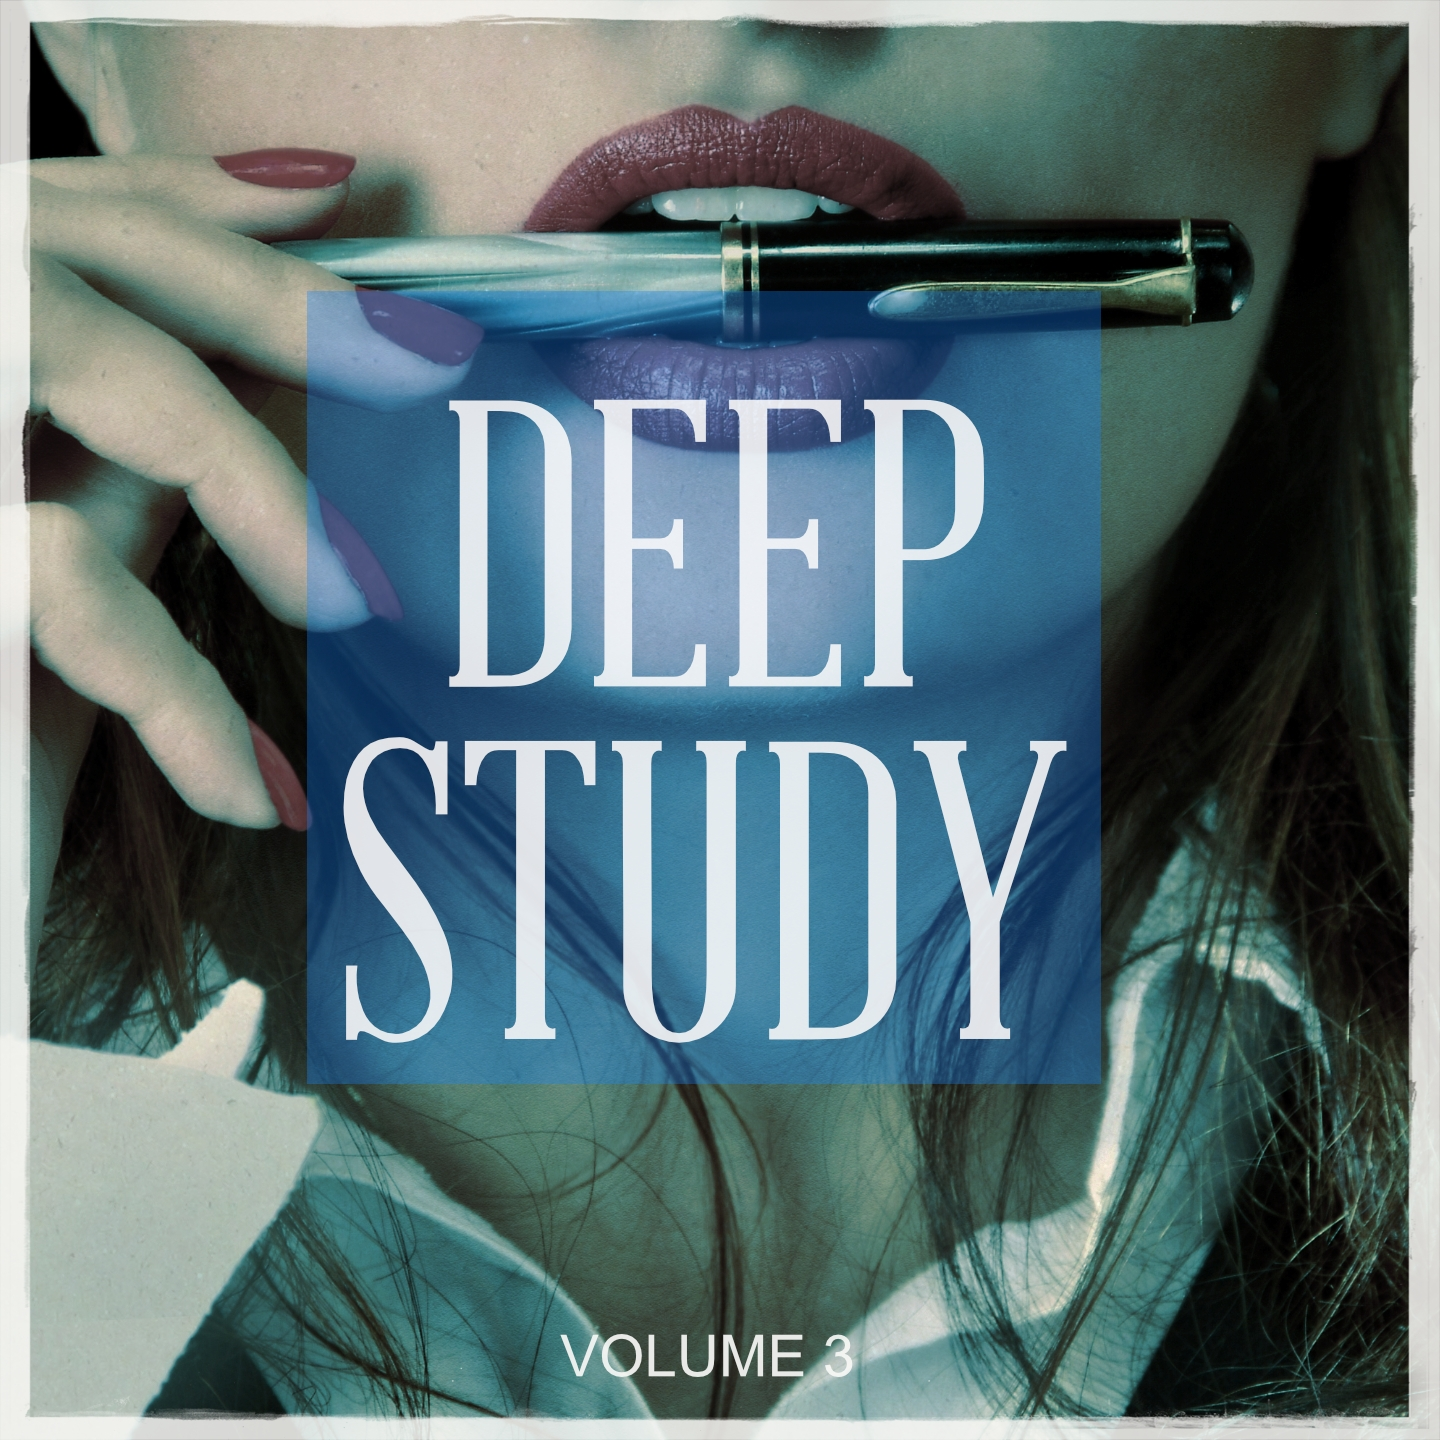 VA-Deep_Study_Vol_3_(The_Ultimate_Playlist_To_Stay_Focus_At_Work_For_Study_Or_Just_To_Relax)-(KLMF166)-WEB-2017-iHR